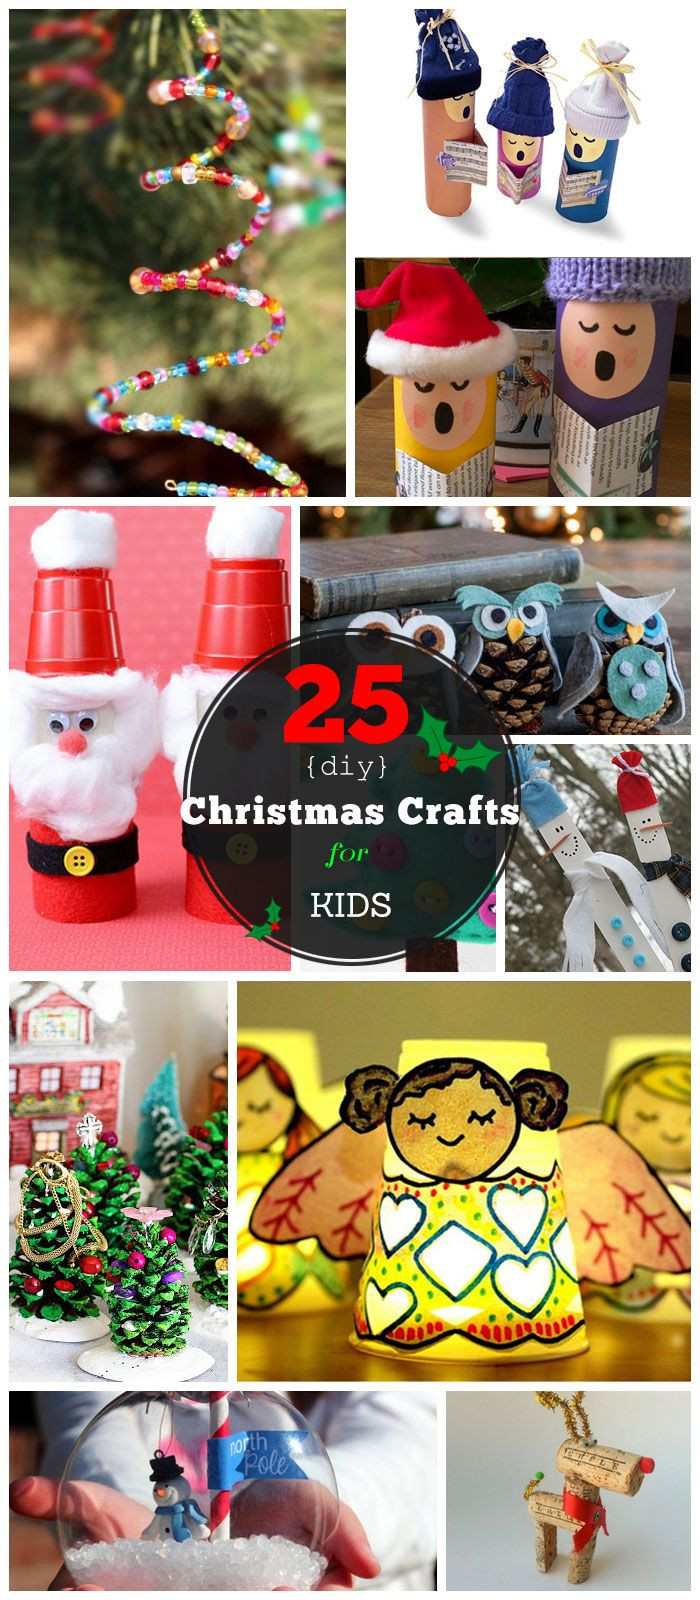 Best ideas about DIY Kids Christmas Craft . Save or Pin 30 Christmas Crafts For Kids to Make DIY Now.